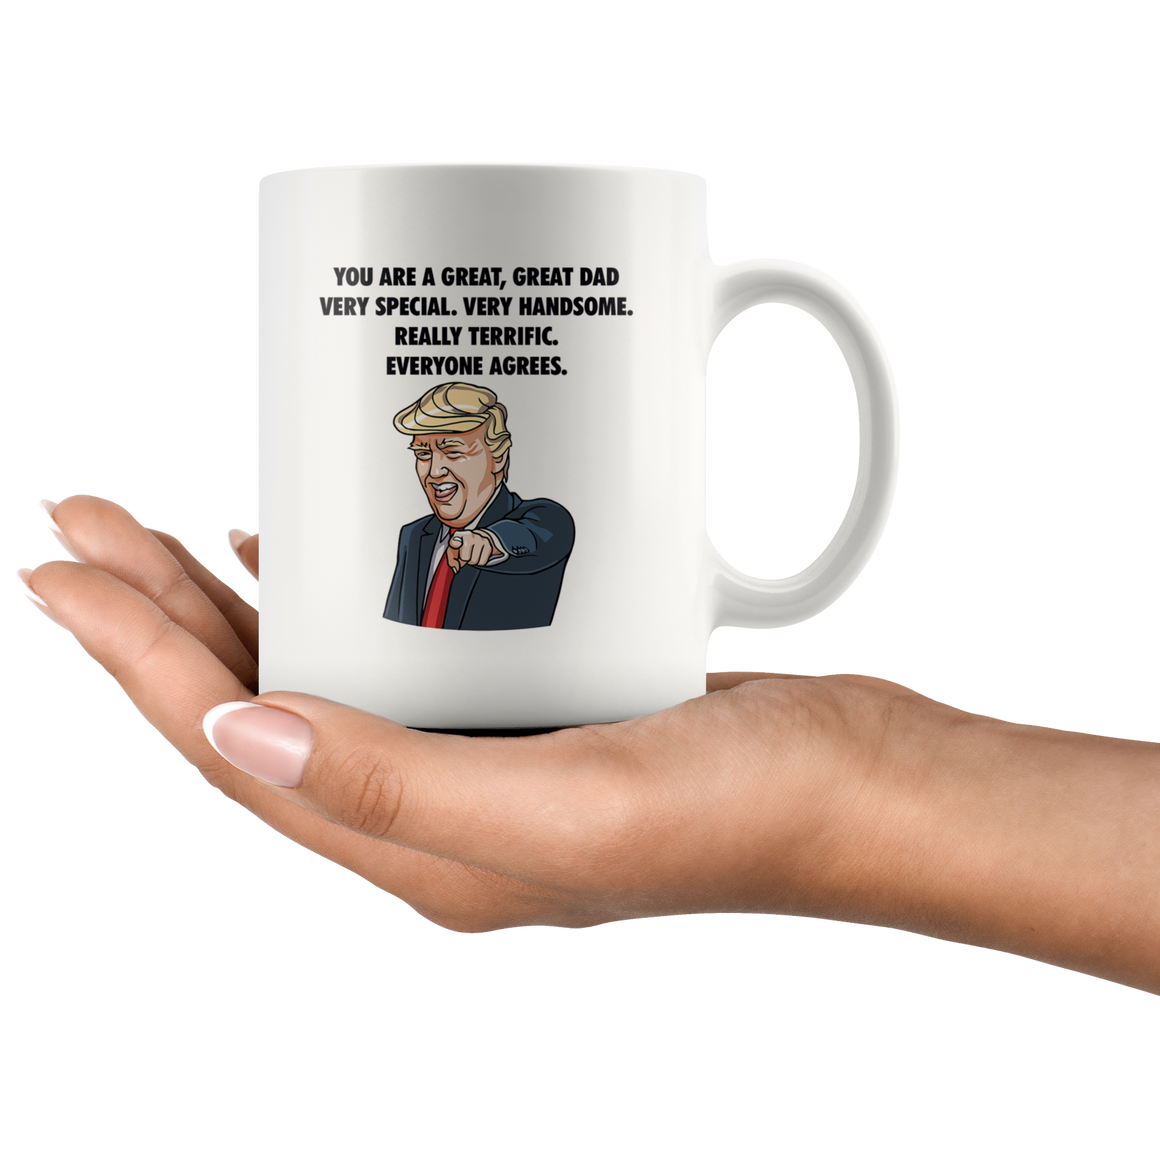 You're a great great dad mug